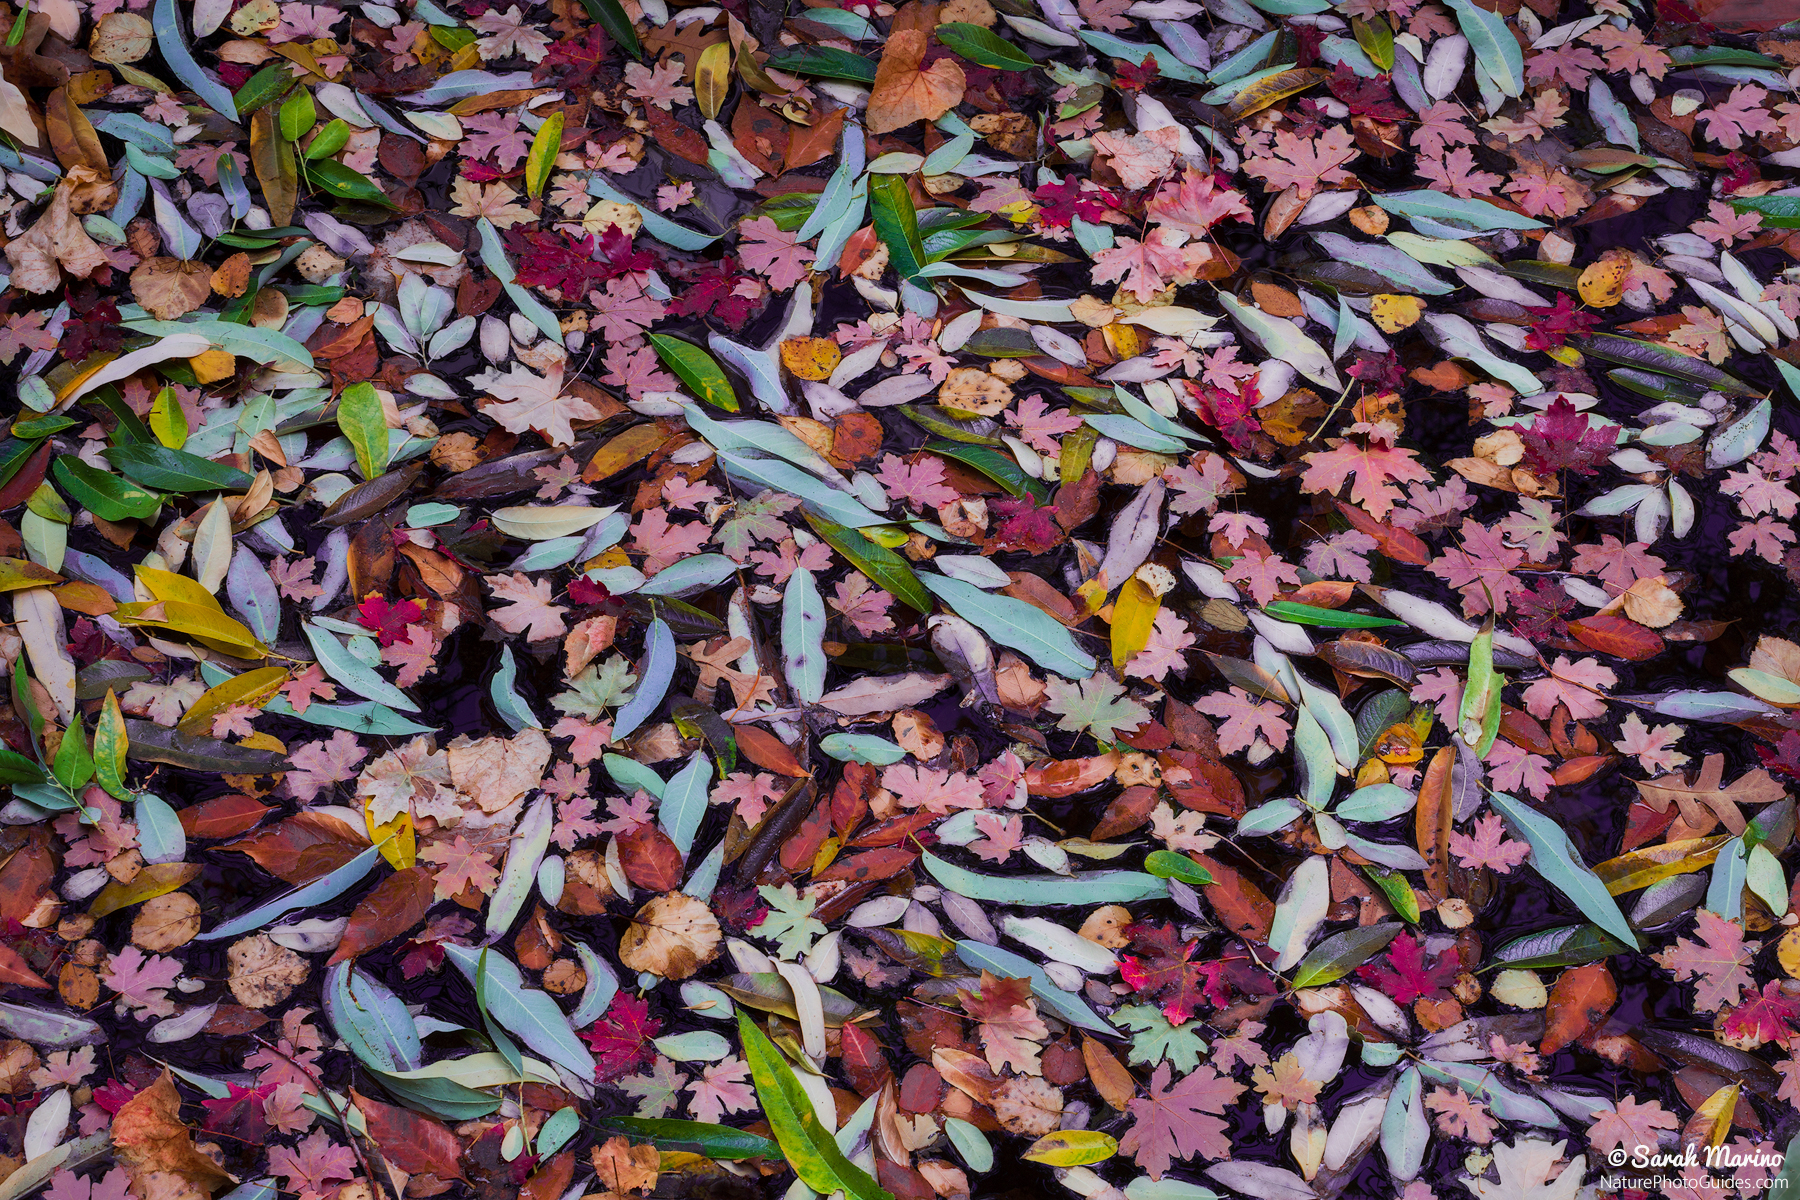 A pond filled with colorful leaves, found somewhere in North America.